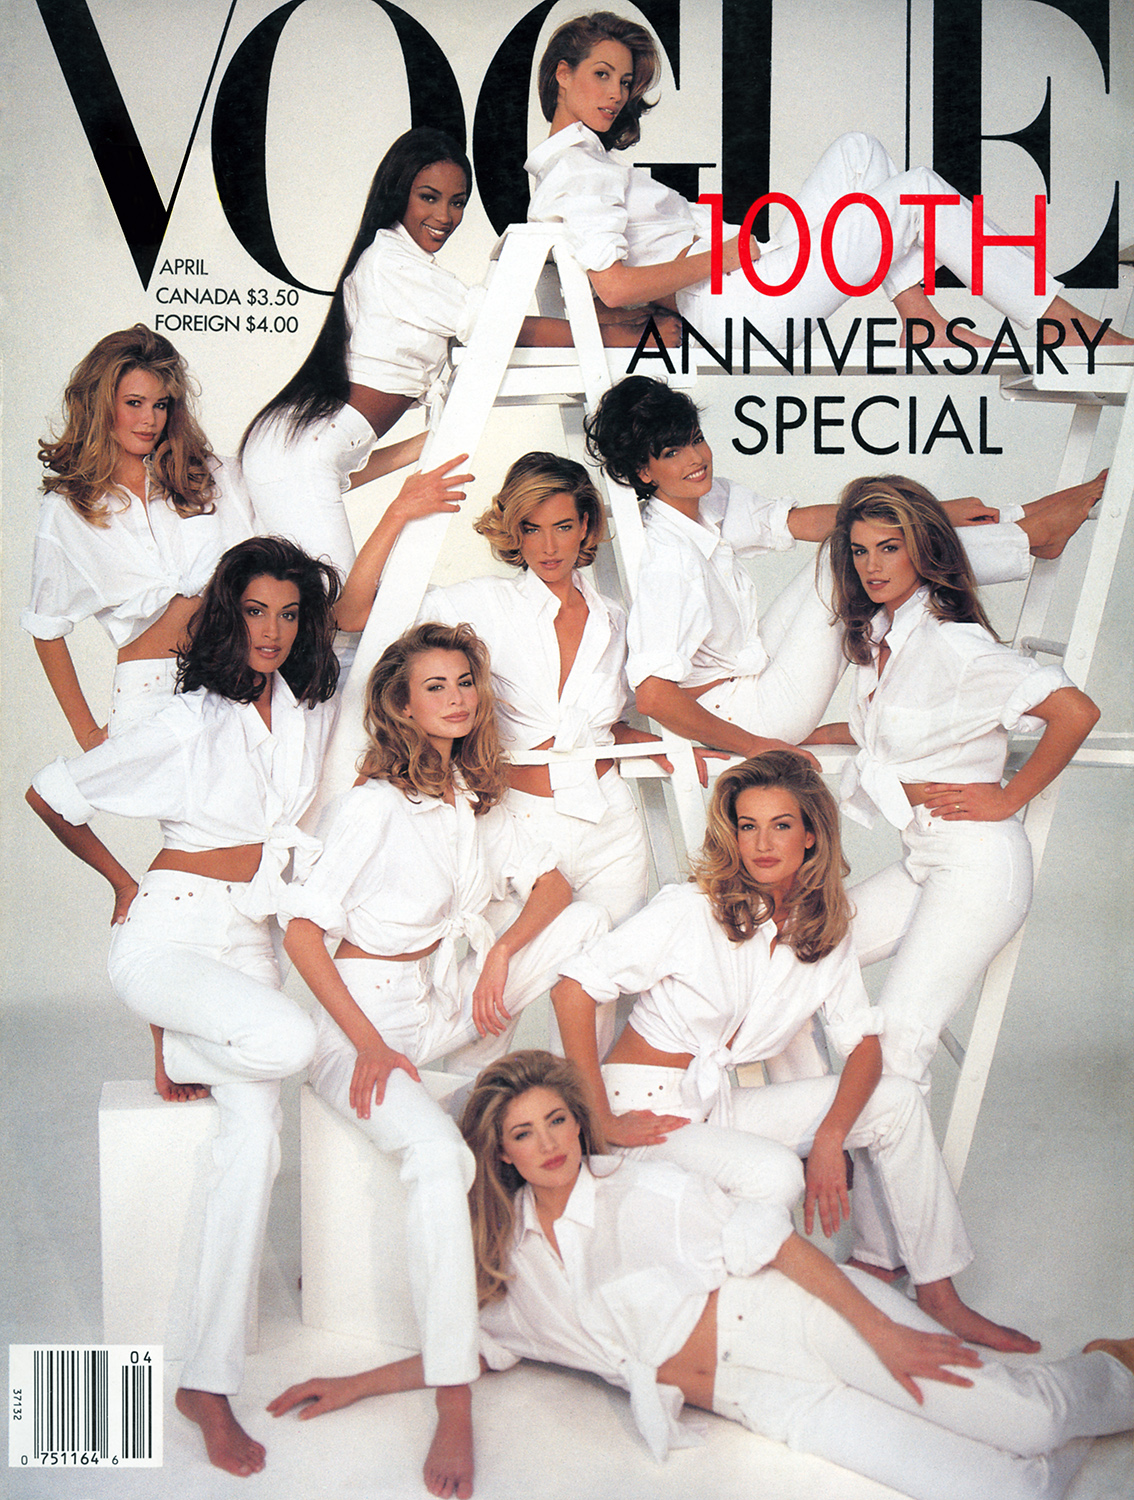 80s-90s-supermodels :       Vogue US, April 1992    Photographer : Patrick Demarchelier   Models : Christy Turlington, Naomi Campbell, Claudia Schiffer, Yasmeen Ghauri, Tatjana Patitz, Linda Evangelitsa, Niki Taylor, Cindy Crawford, Karen Mulder & Elaine Irwin